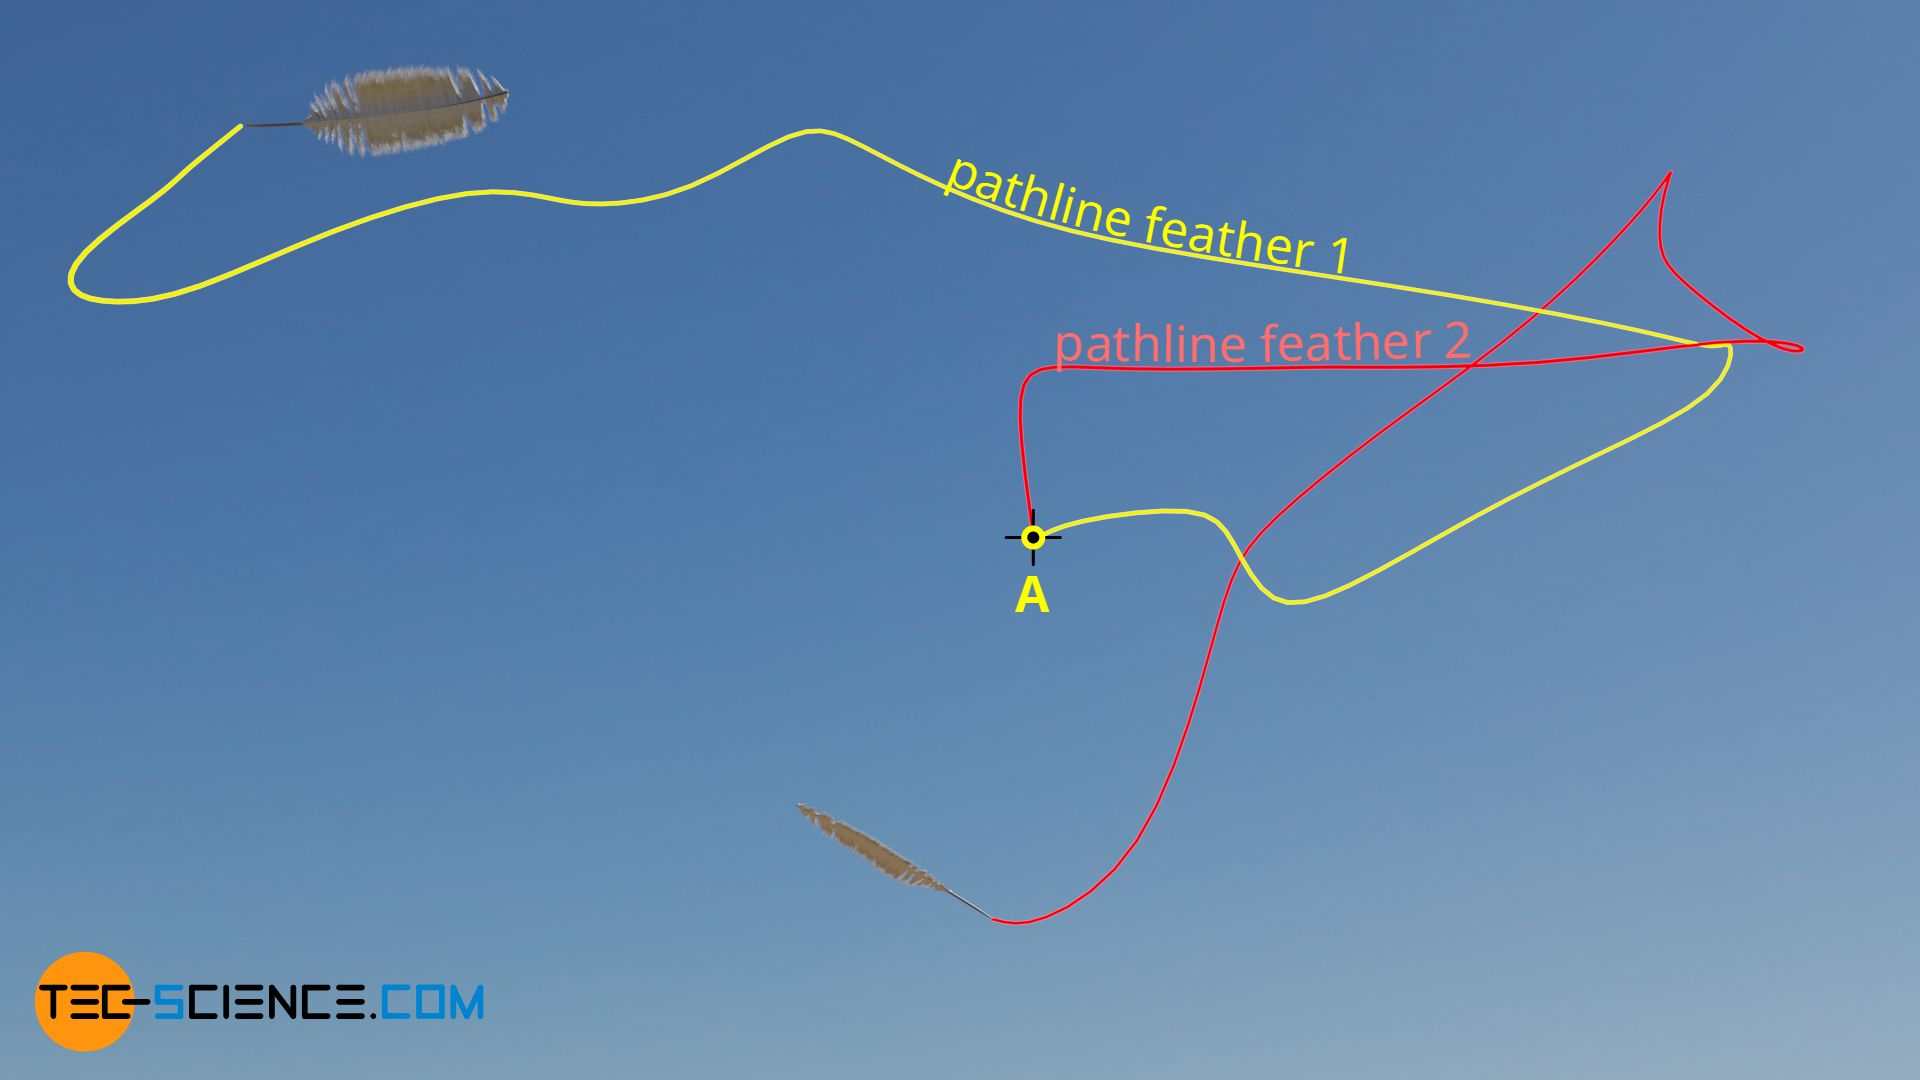 Pathlines (trajectories) of two feathers in an unsteady air flow (wind)